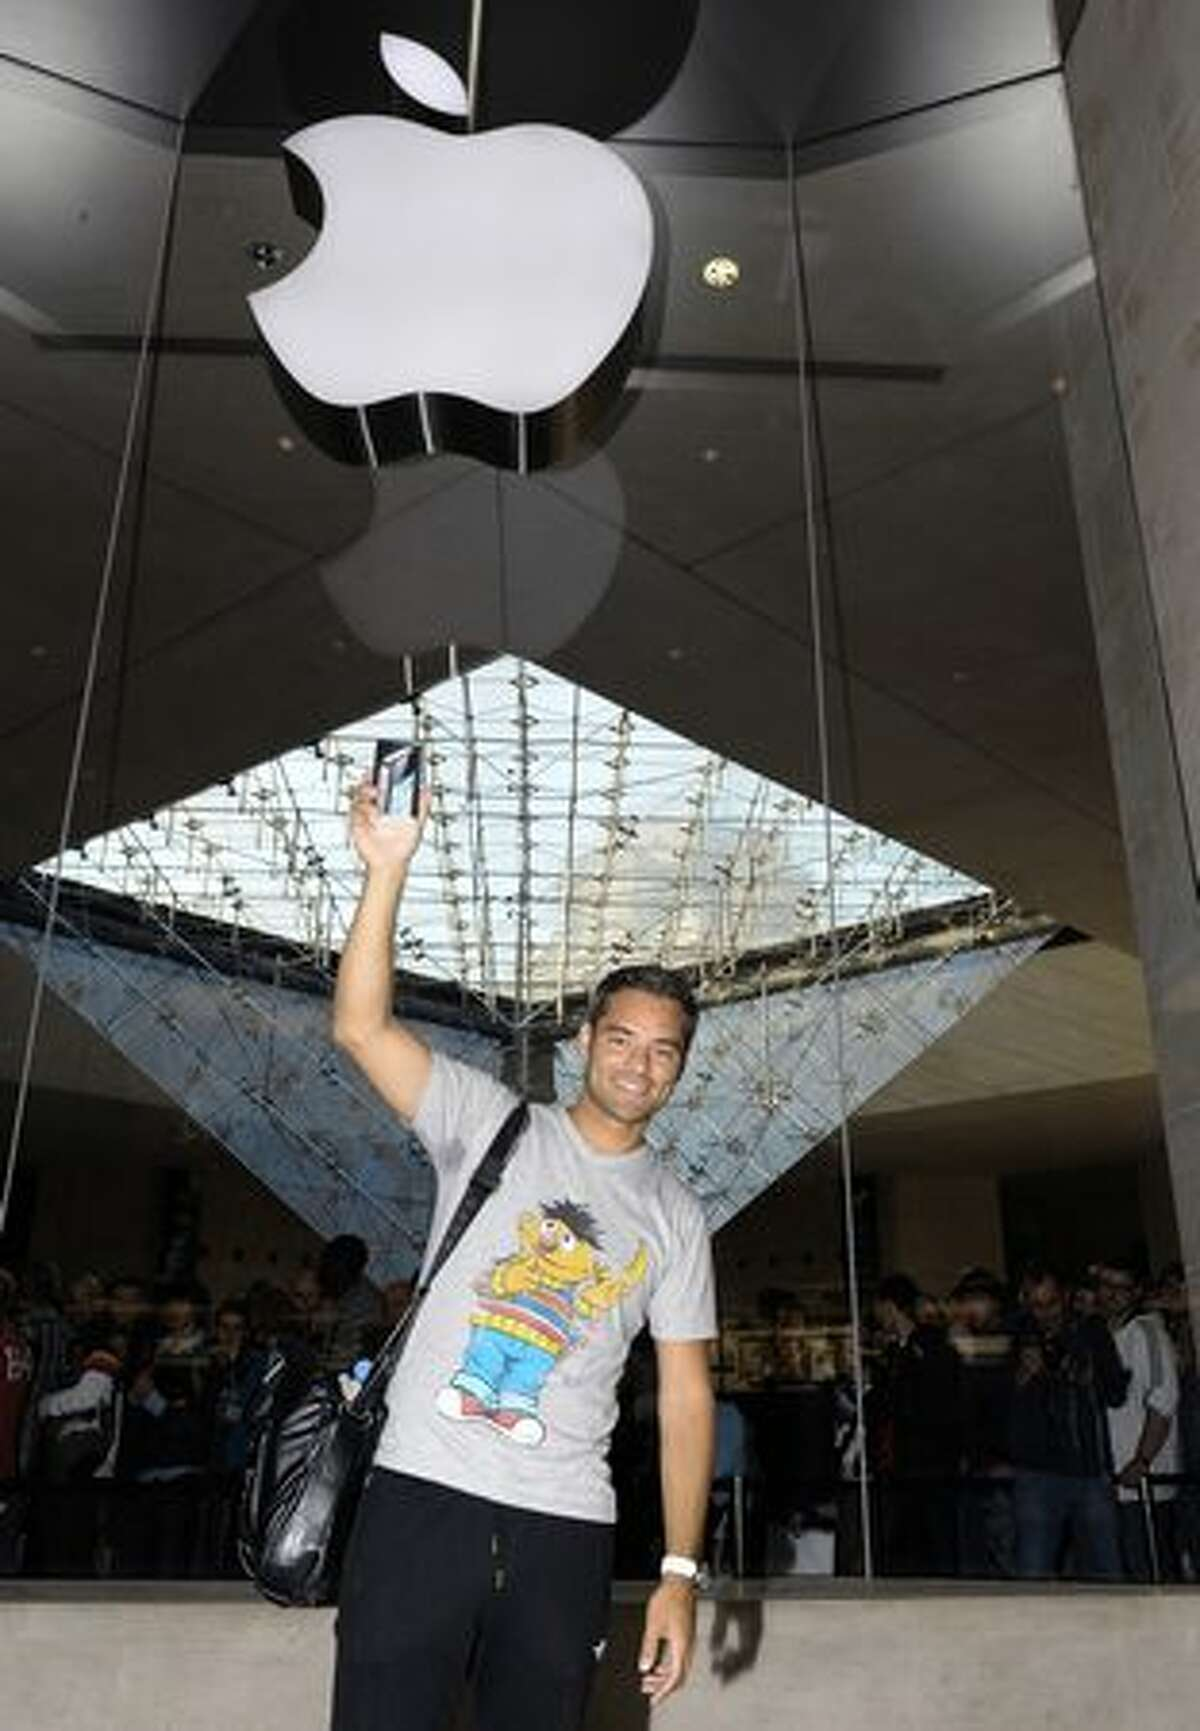 Maurice holds his new iPhone 4 in front of a mobile-phone store at the Carrousel du Louvre shopping mall in Paris on June 24, 2010.